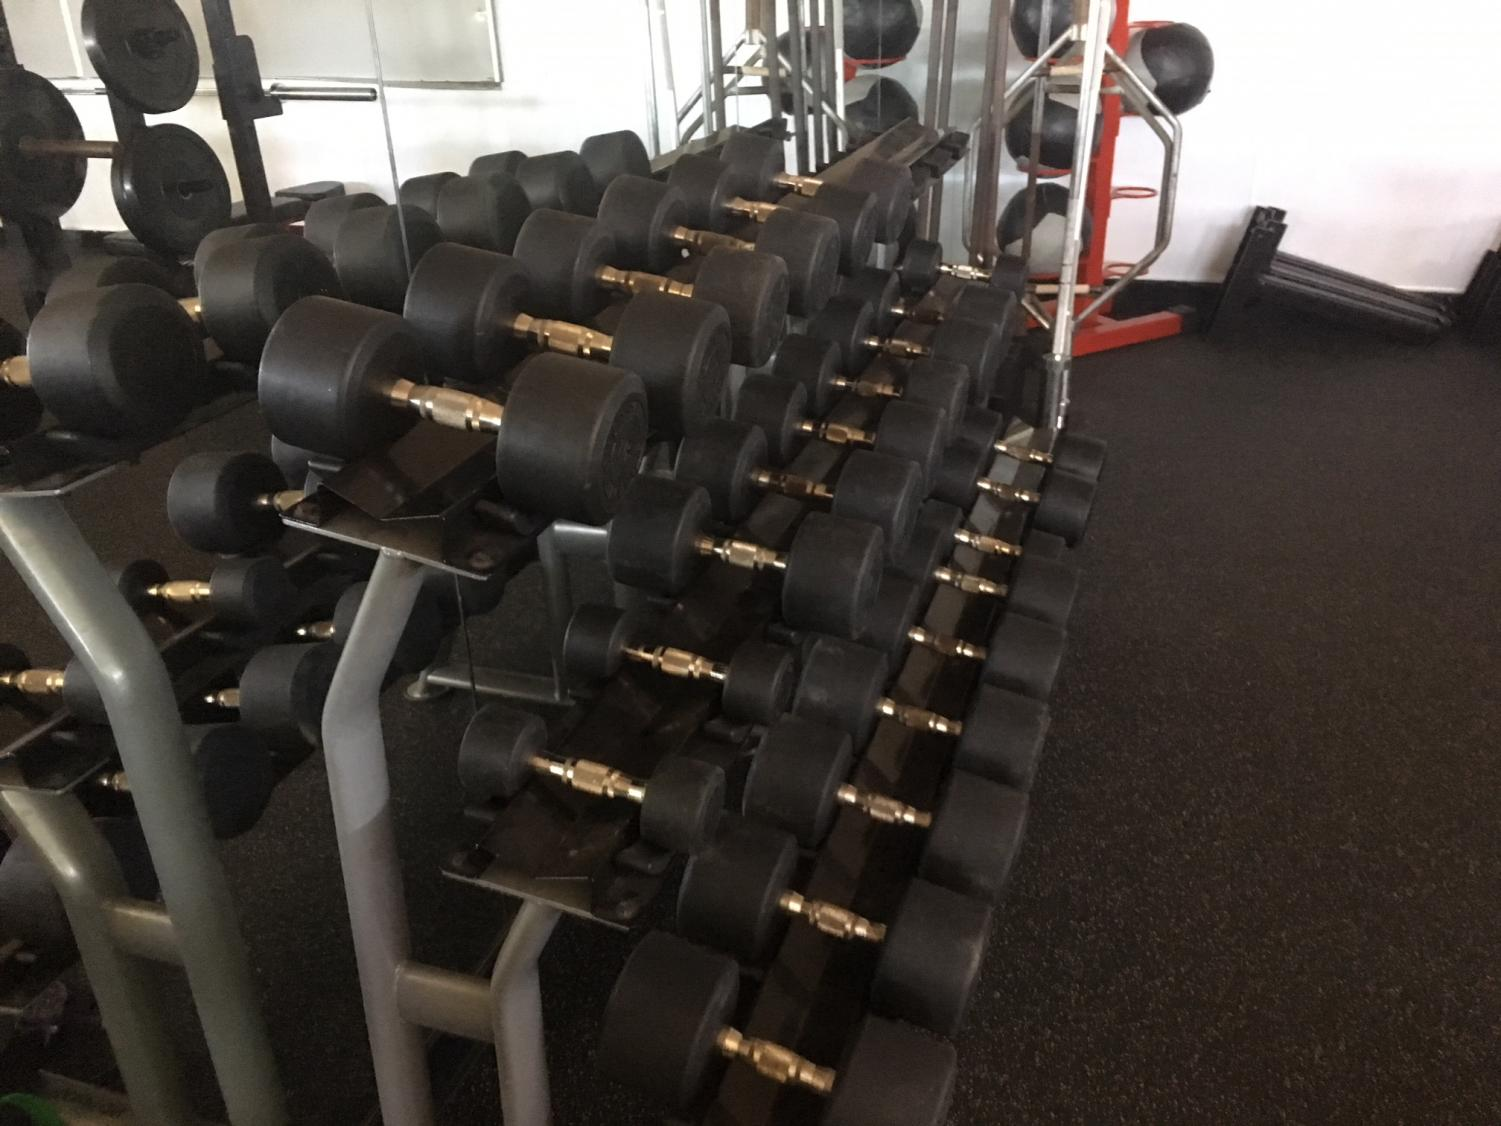 The+new+weight+room+has+double+the+amount+of+free+weights+as+the+old+room